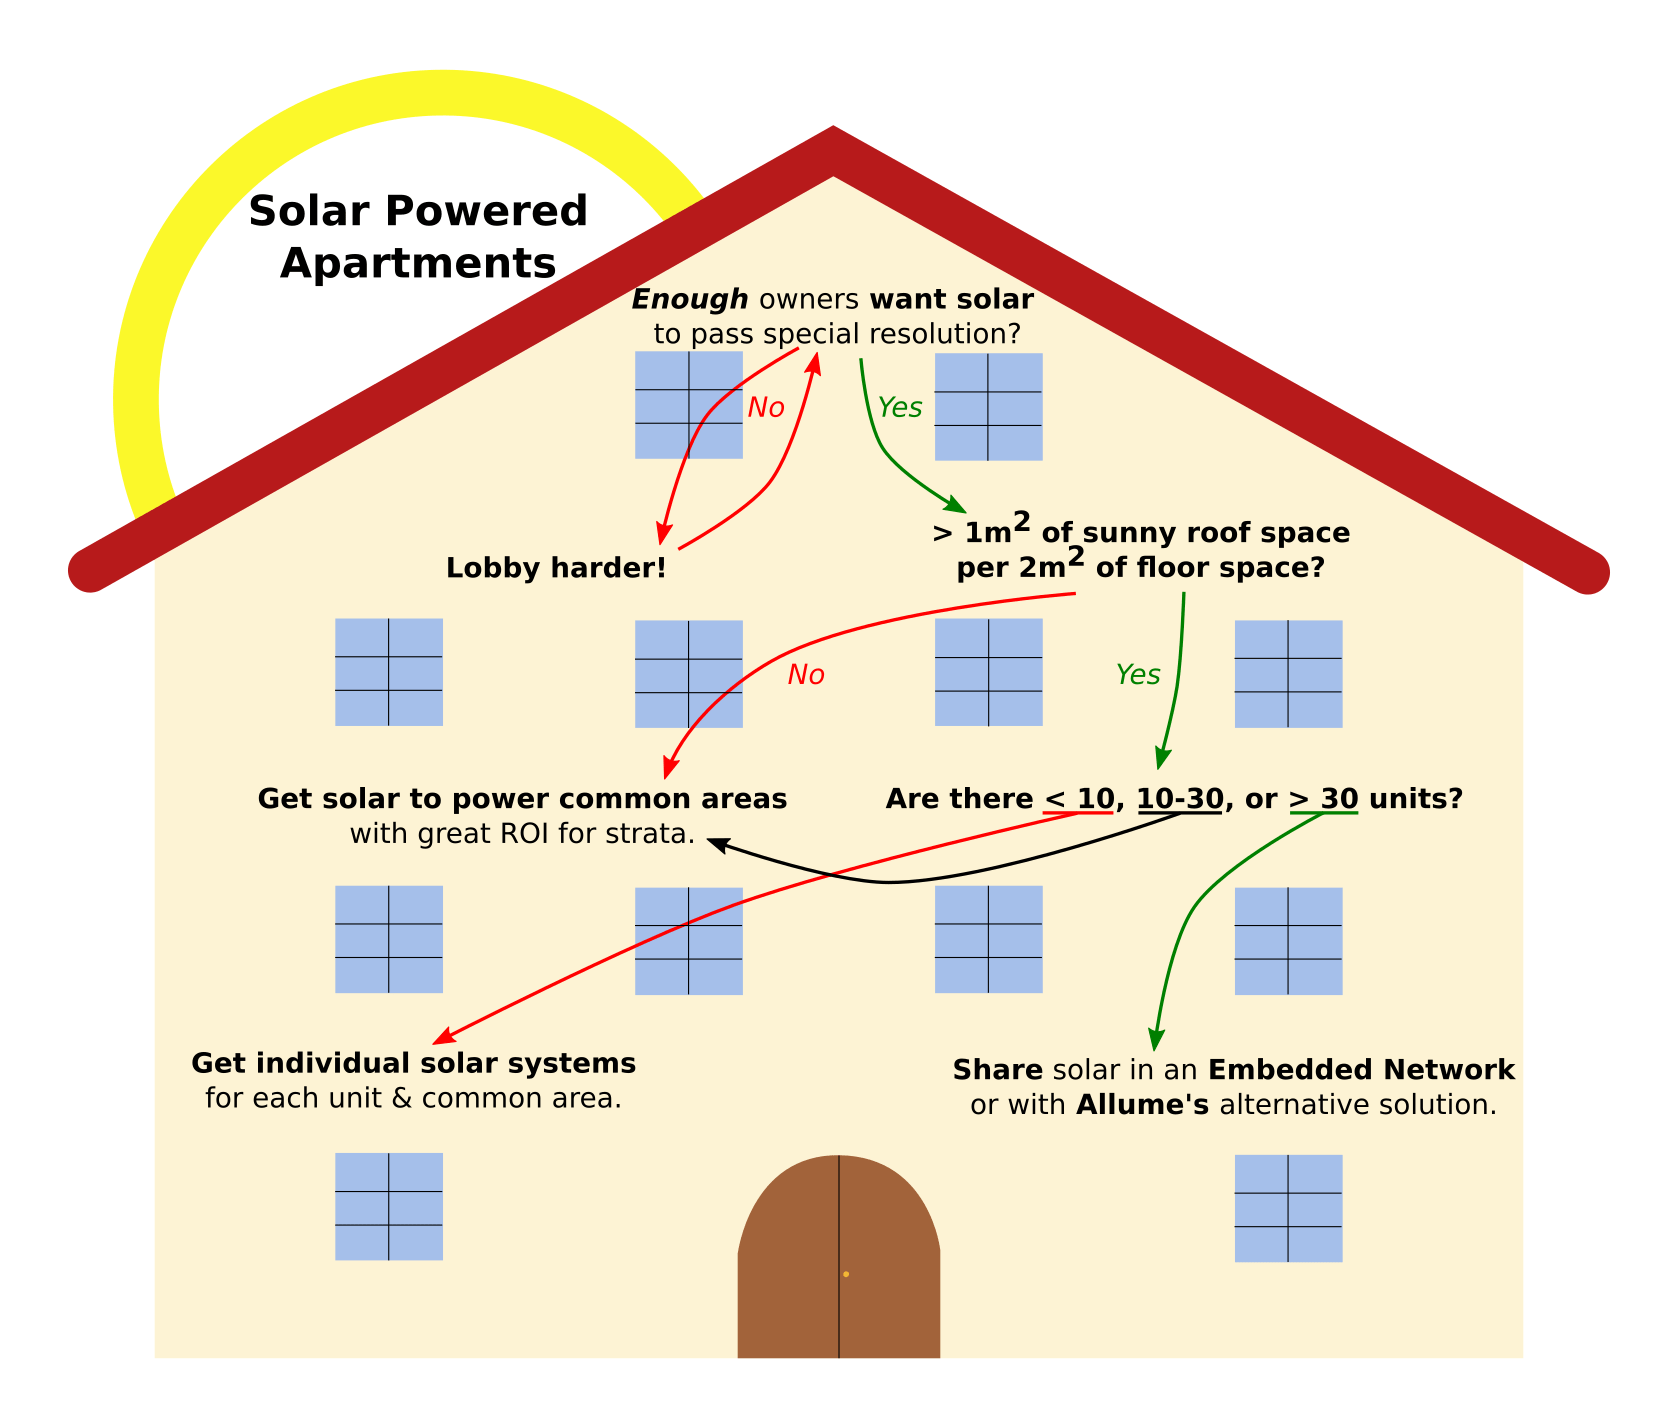 hight resolution of get in on the ground floor how apartments can join the solar boom solar water heater system diagram flickr photo sharing